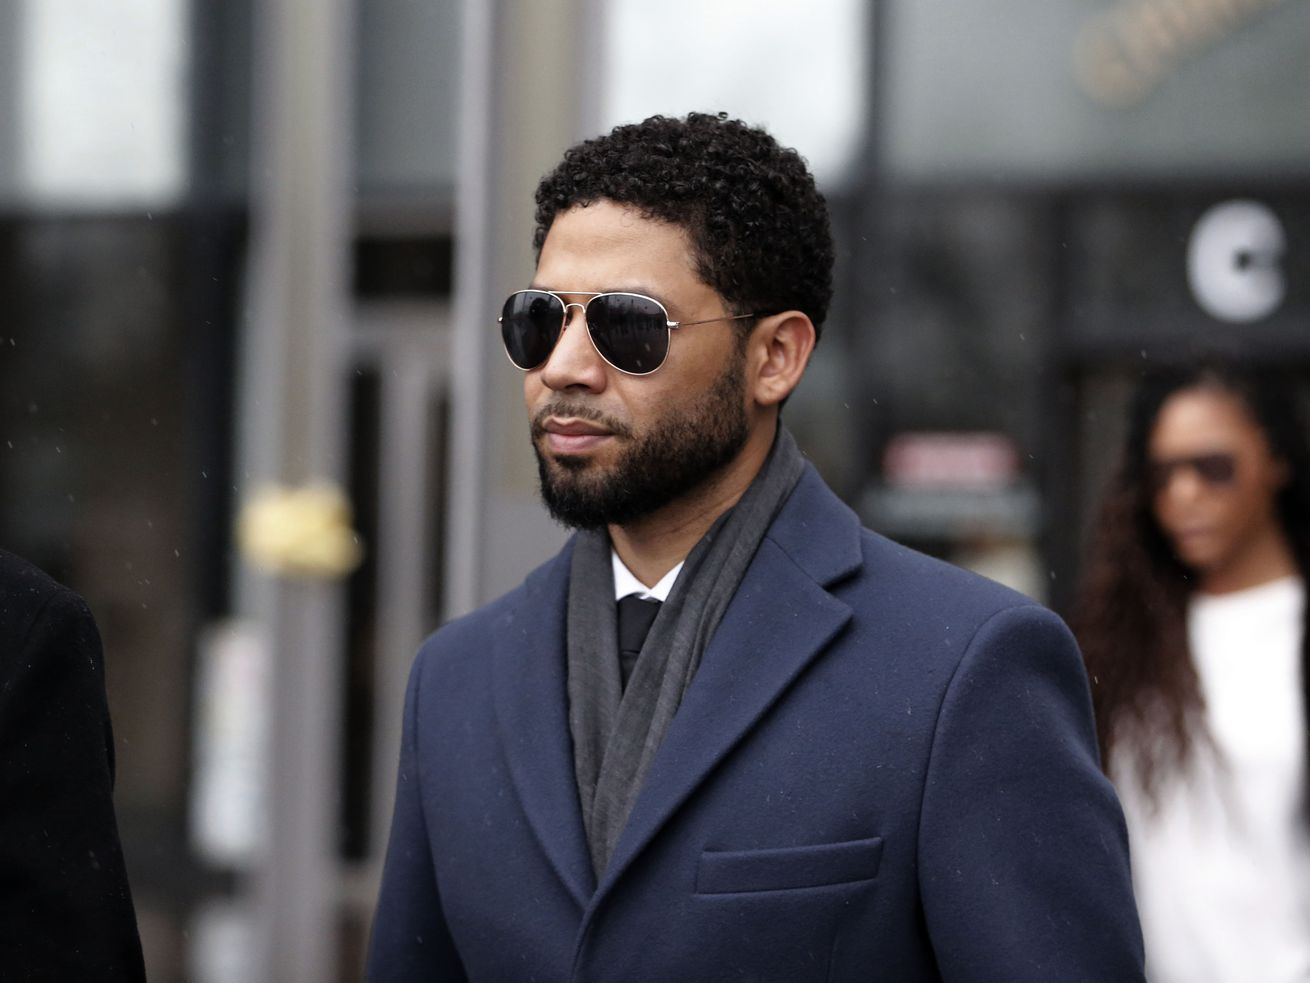 Illinois state prosecutors have dropped all charges against Jussie Smollett.